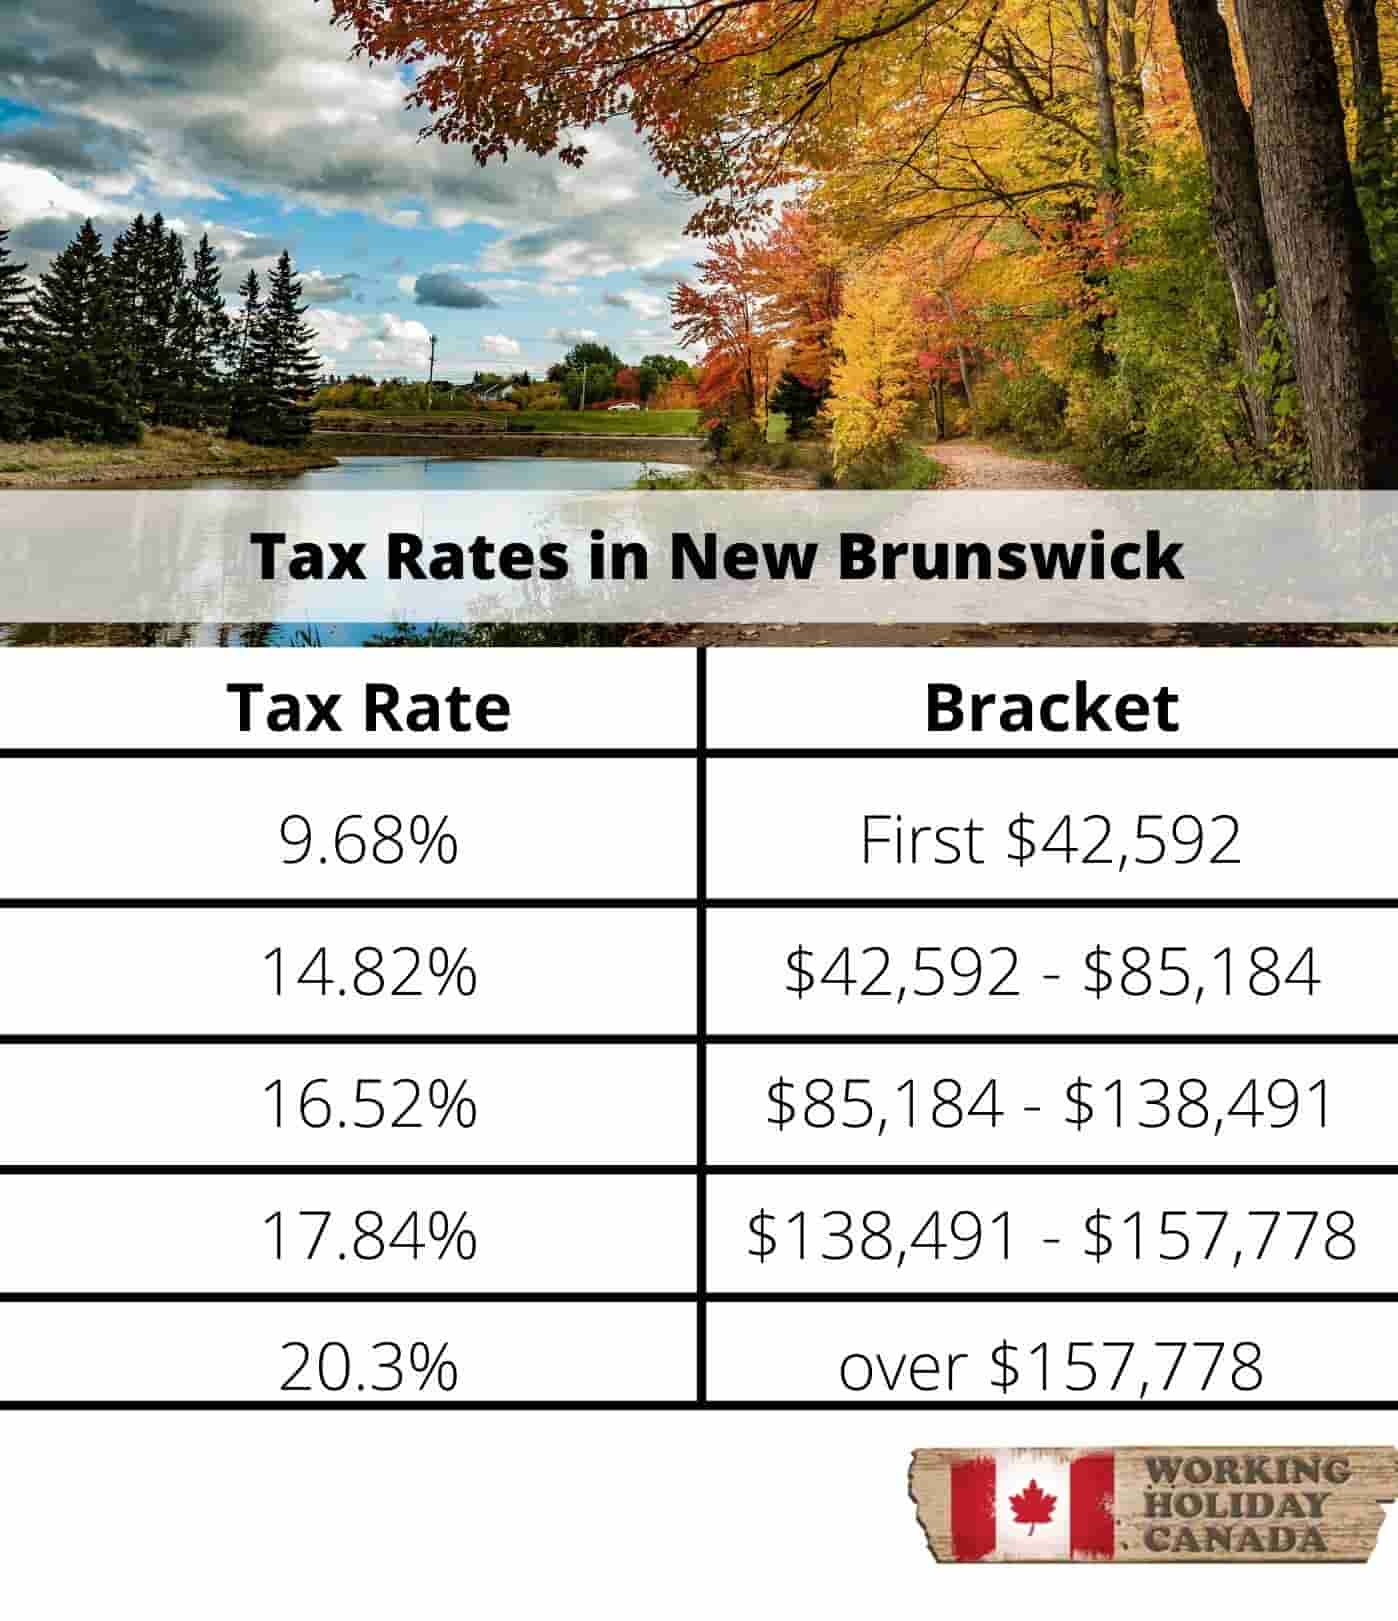 New Brunswick tax rates